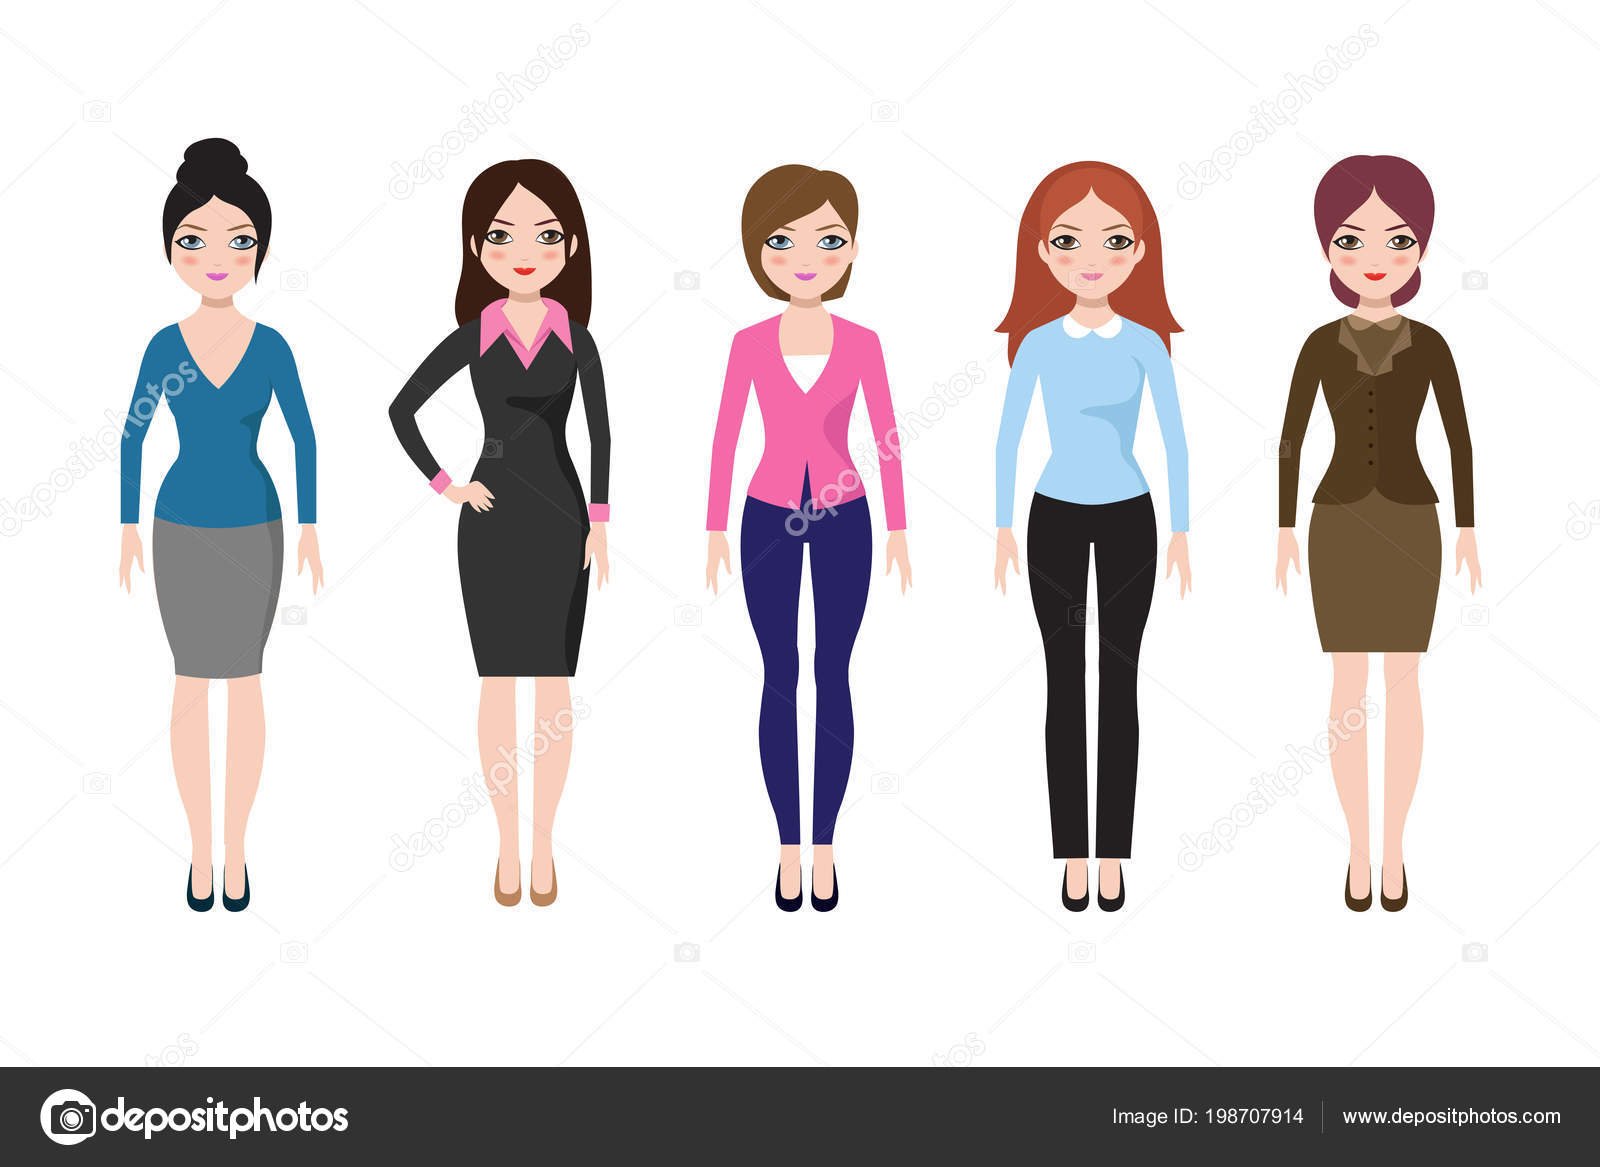 dress - Clothes casual for young women photo video